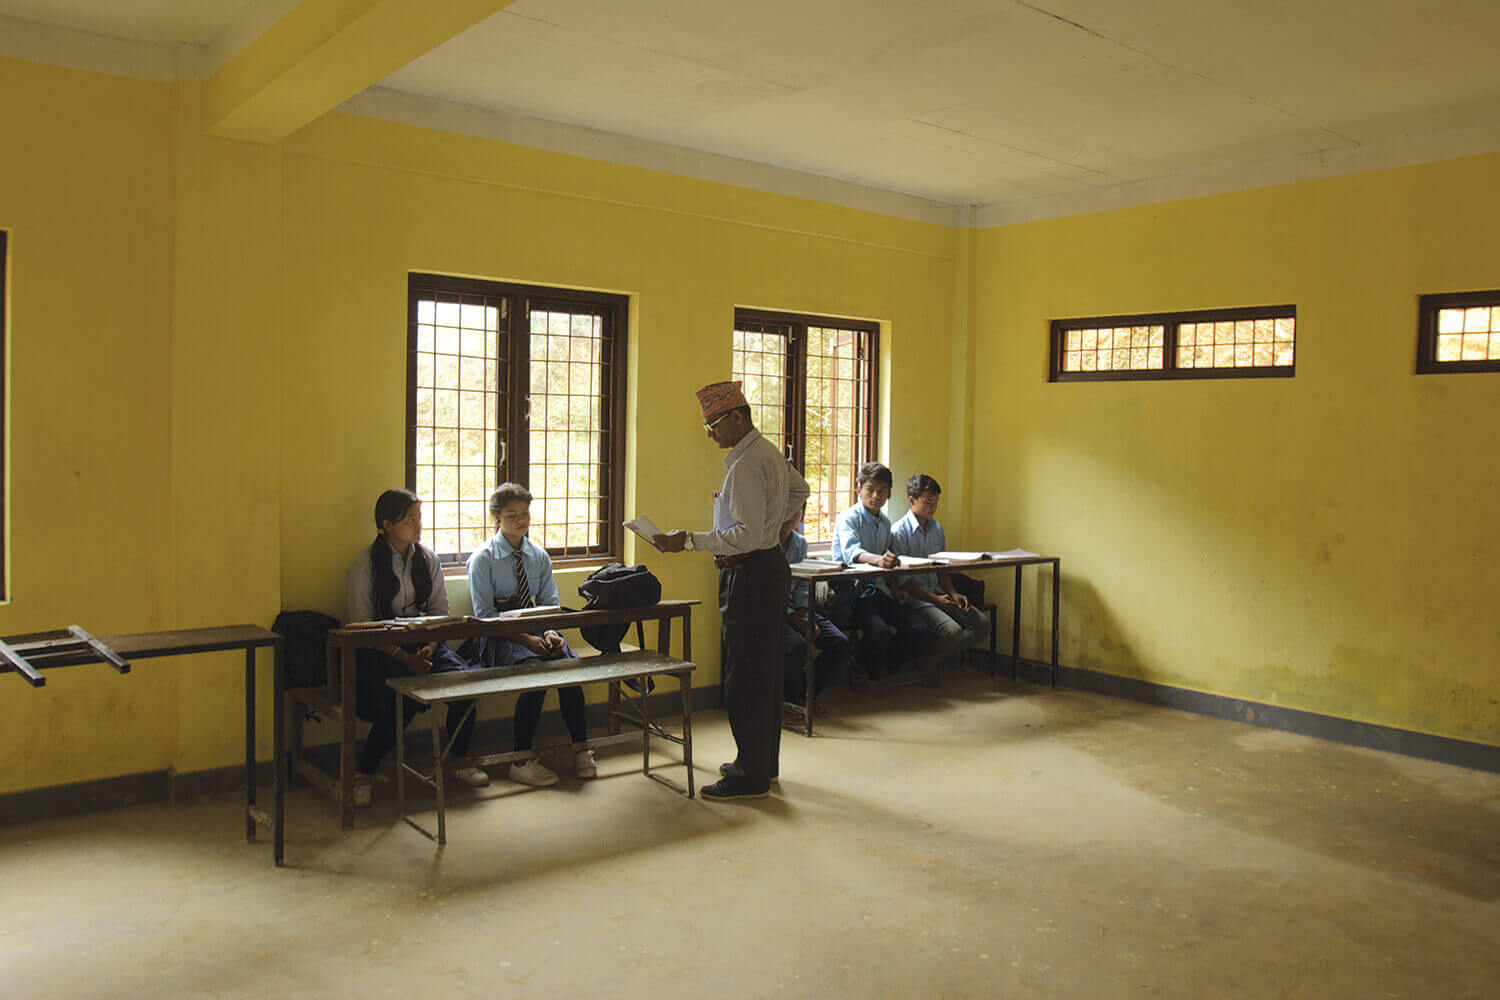 Quake was a learning experience for Nepal's schools